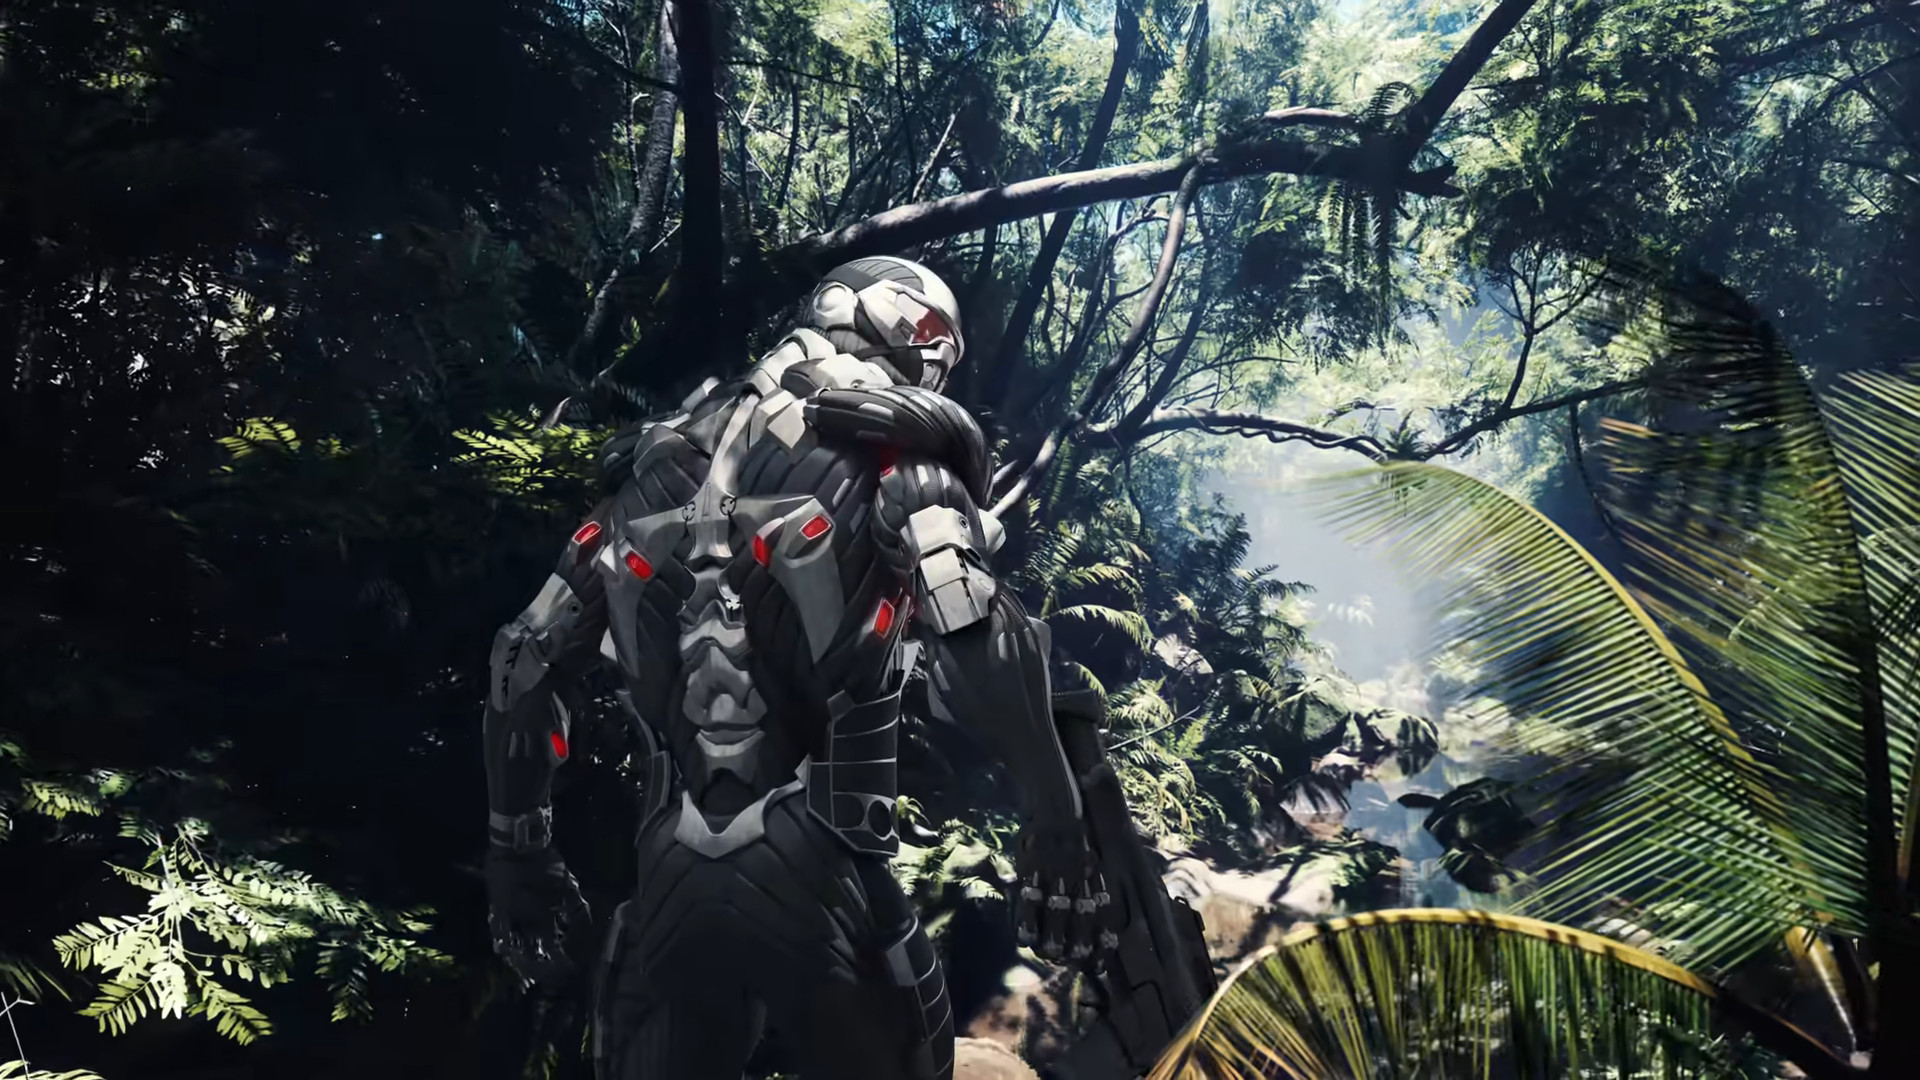 Crysis Remastered system requirements revealed – Can it run Crysis?